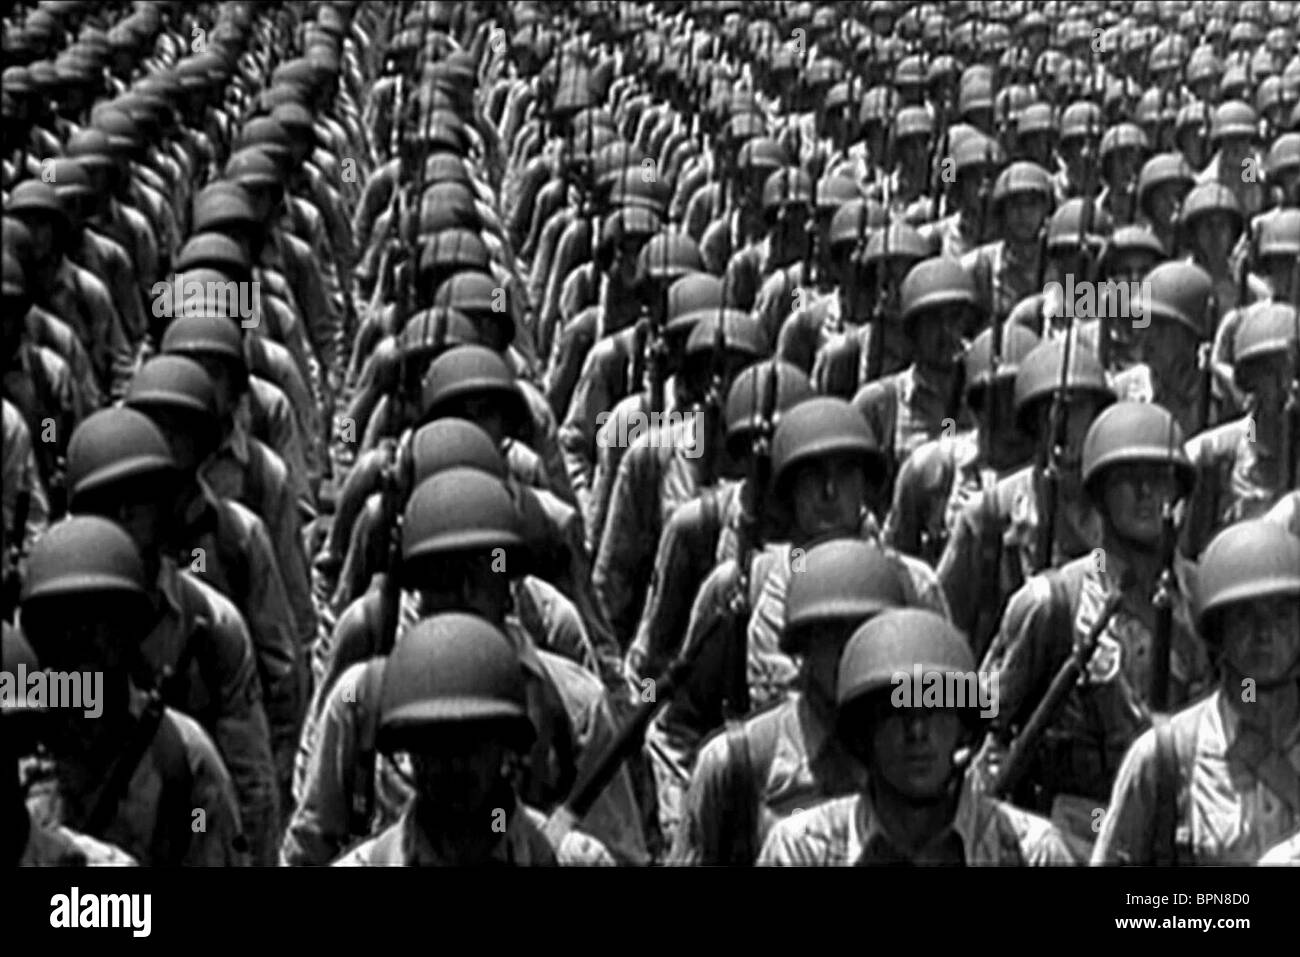 Marching Troops High Resolution Stock Photography And